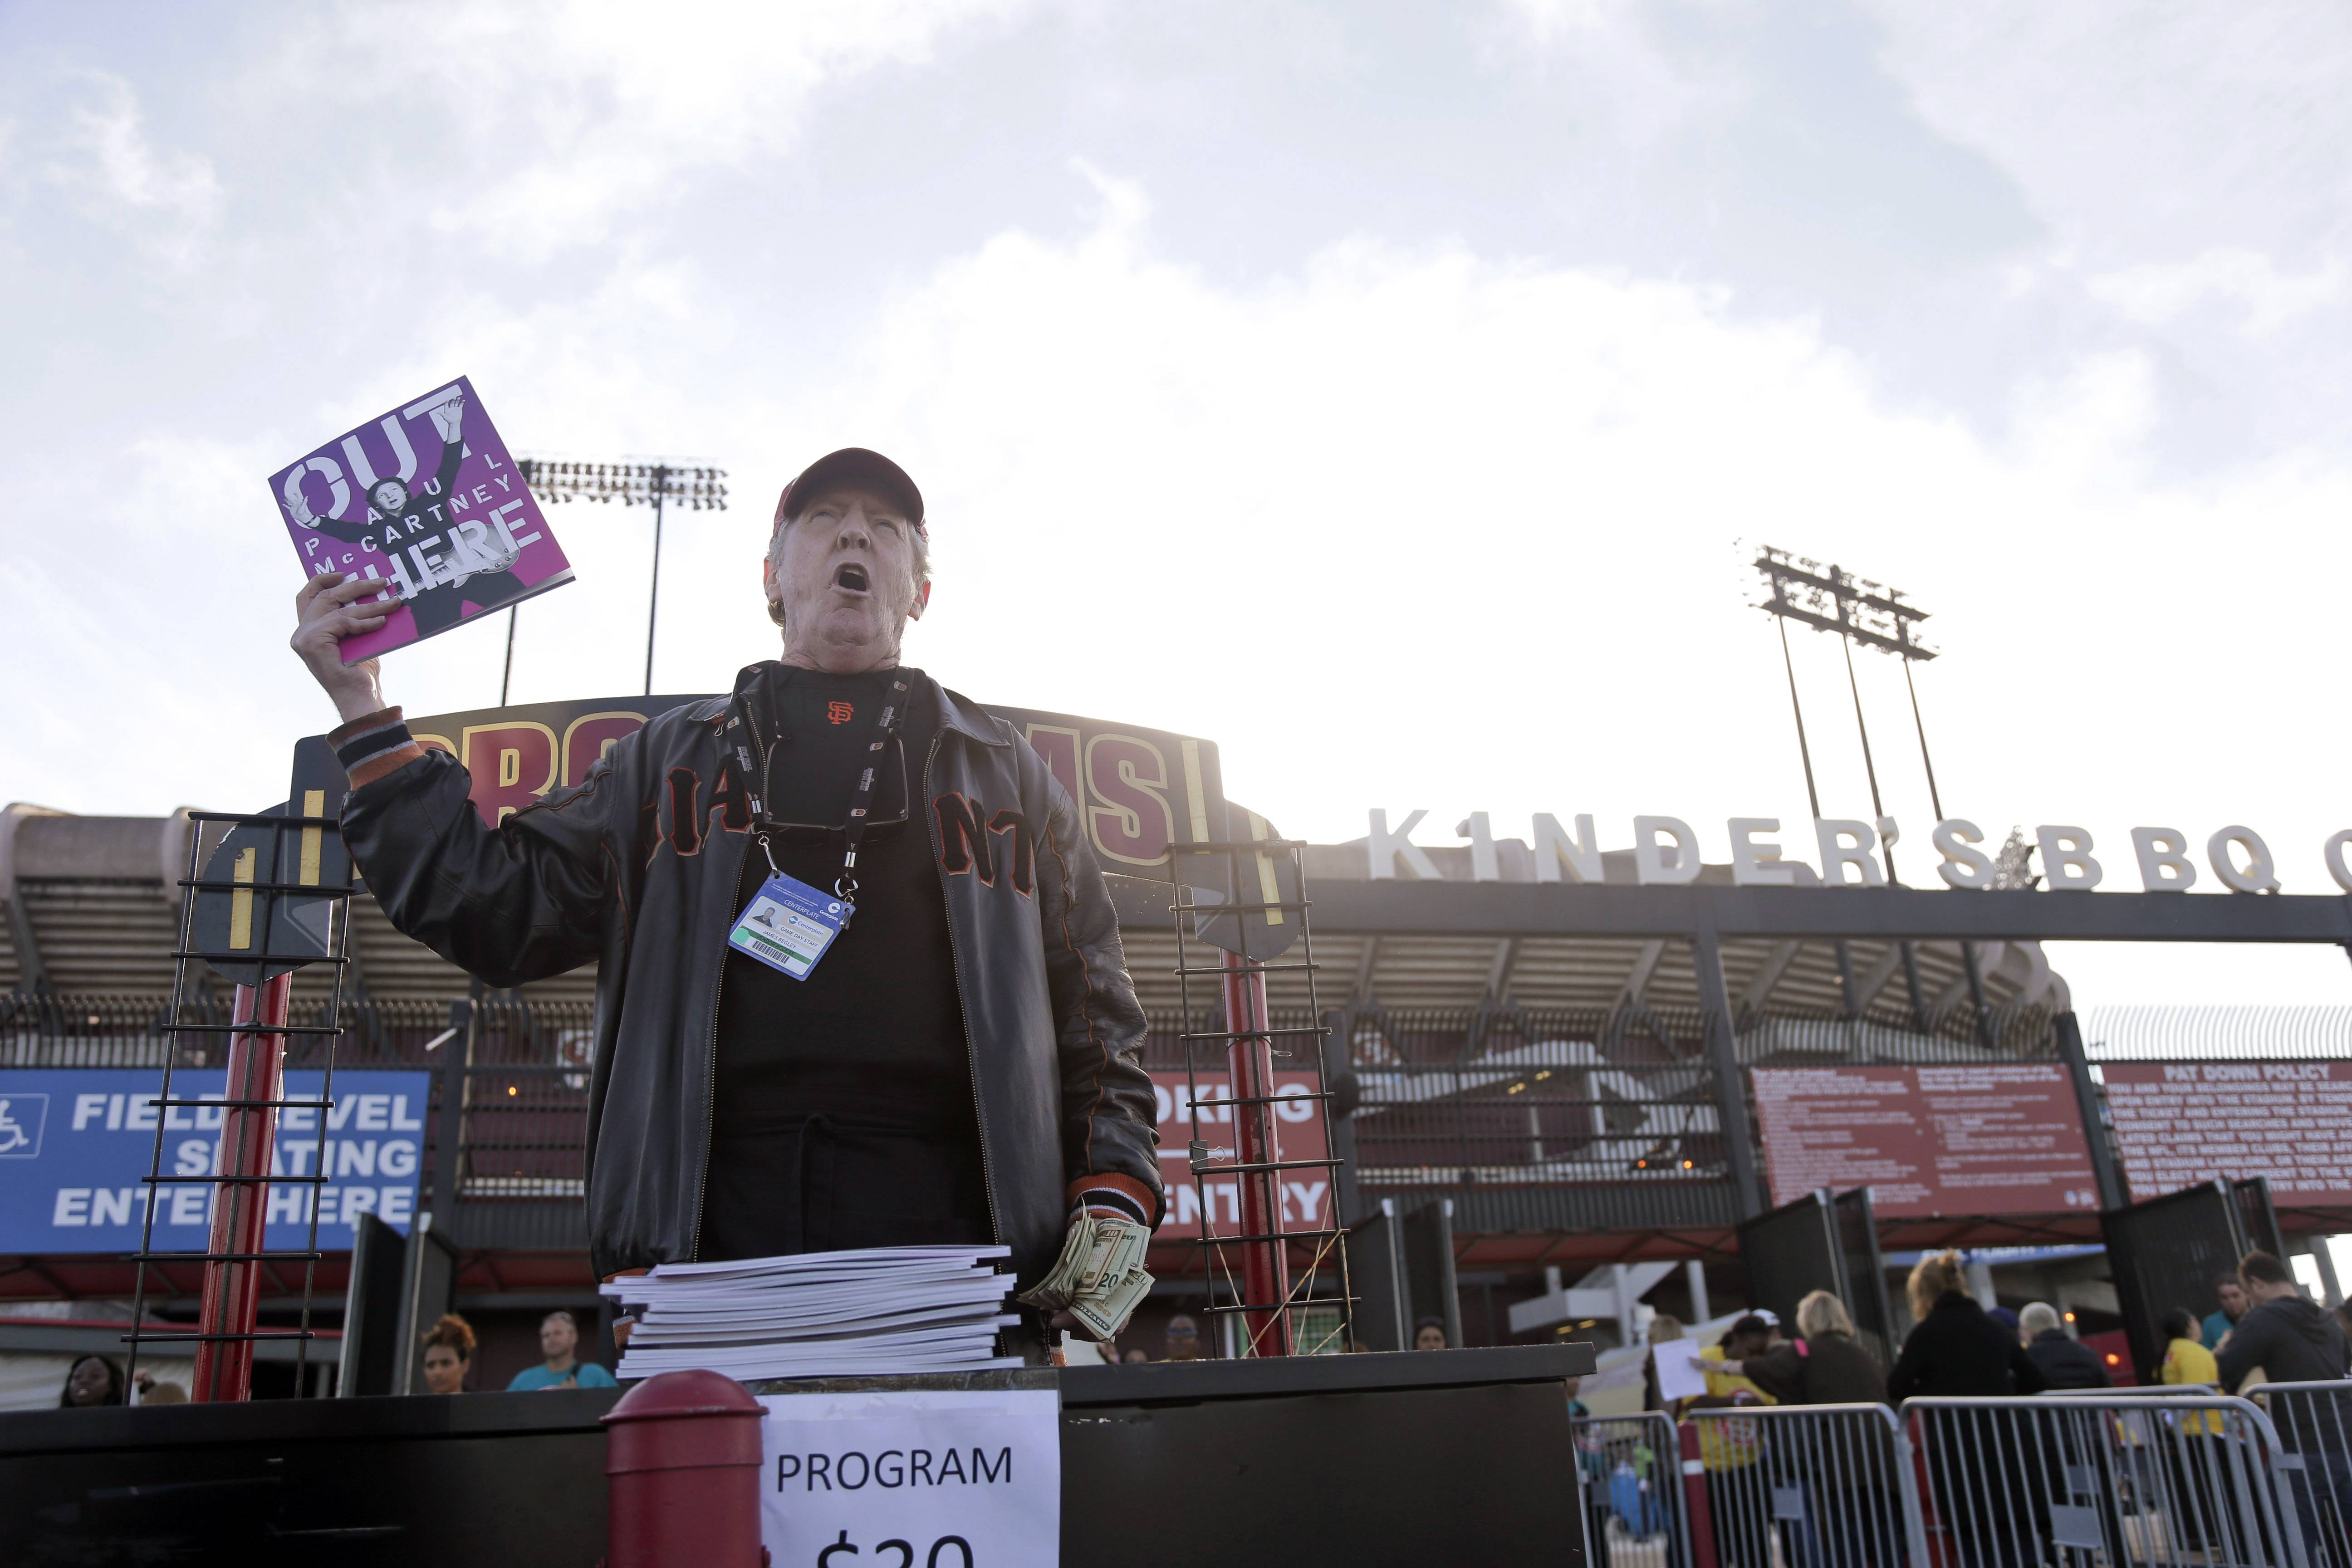 A program vendor stands outside Candlestick Park before a Paul McCartney concert Thursday, Aug. 14, 2014, in San Francisco. San Francisco is saying goodbye to the stadium where its beloved Giants and 49ers celebrated some of their greatest triumphs.